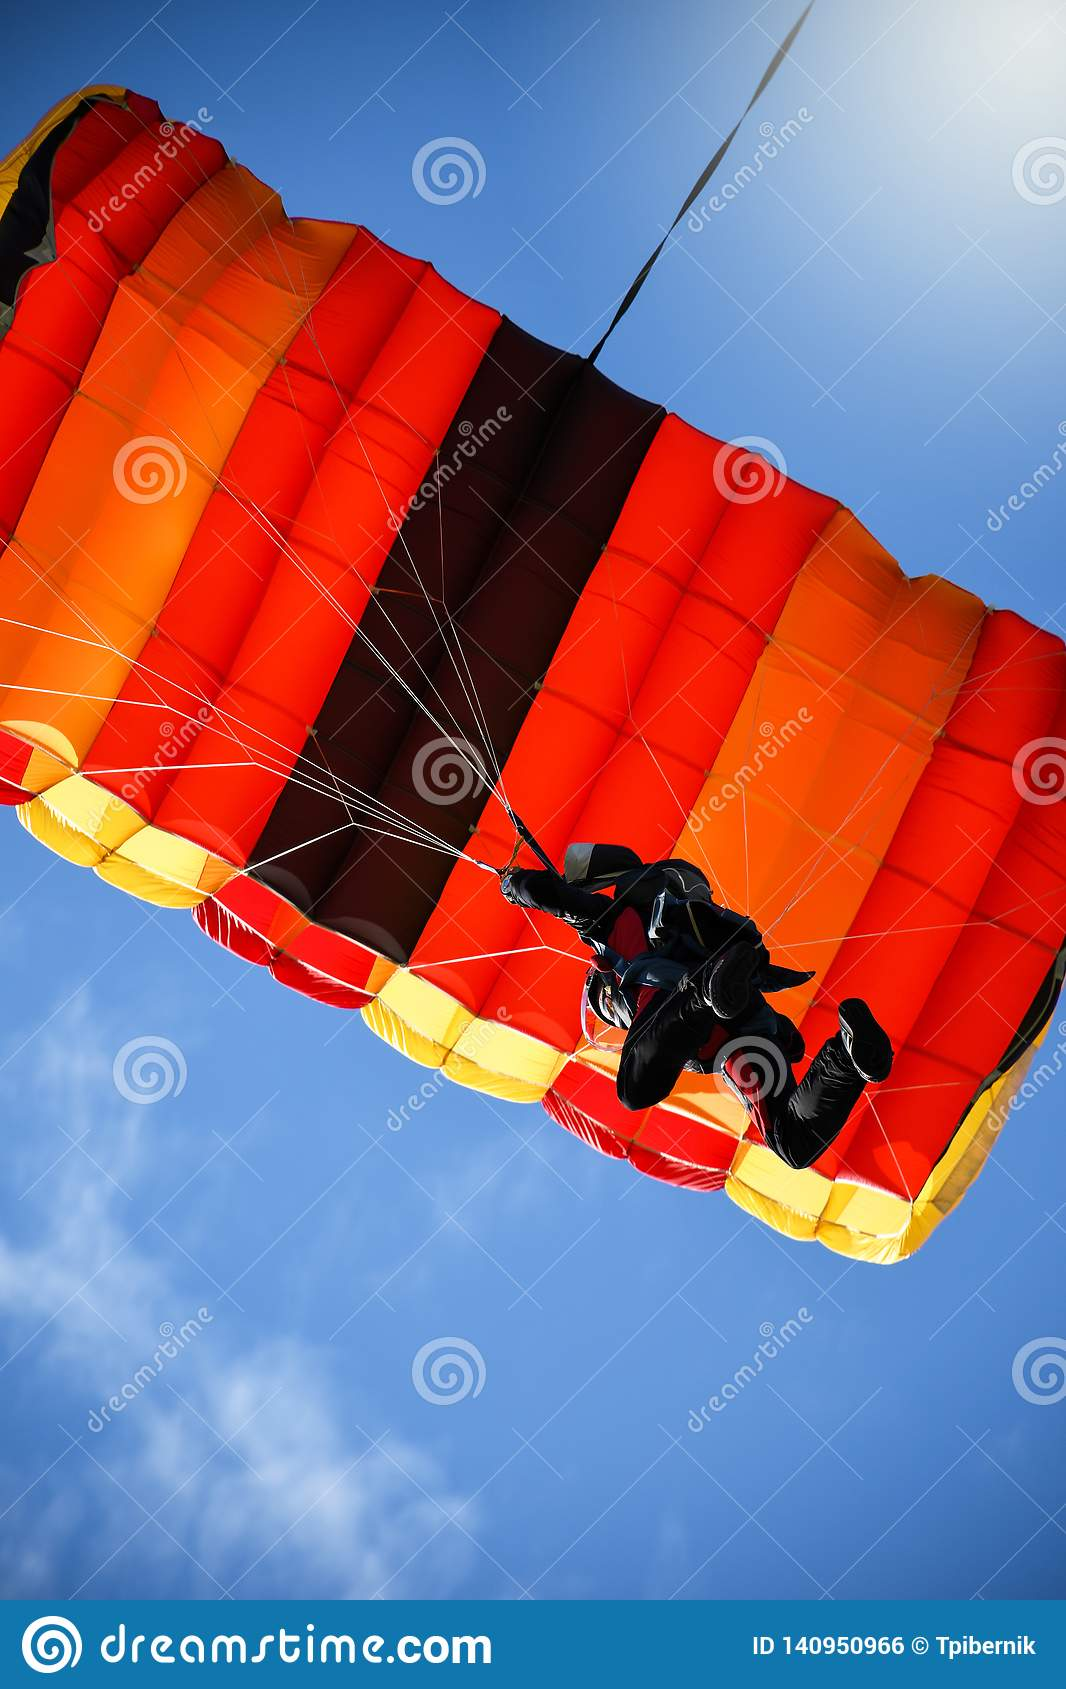 Paraglider With Red Parachute Flying In The Blue Sky Stock ...